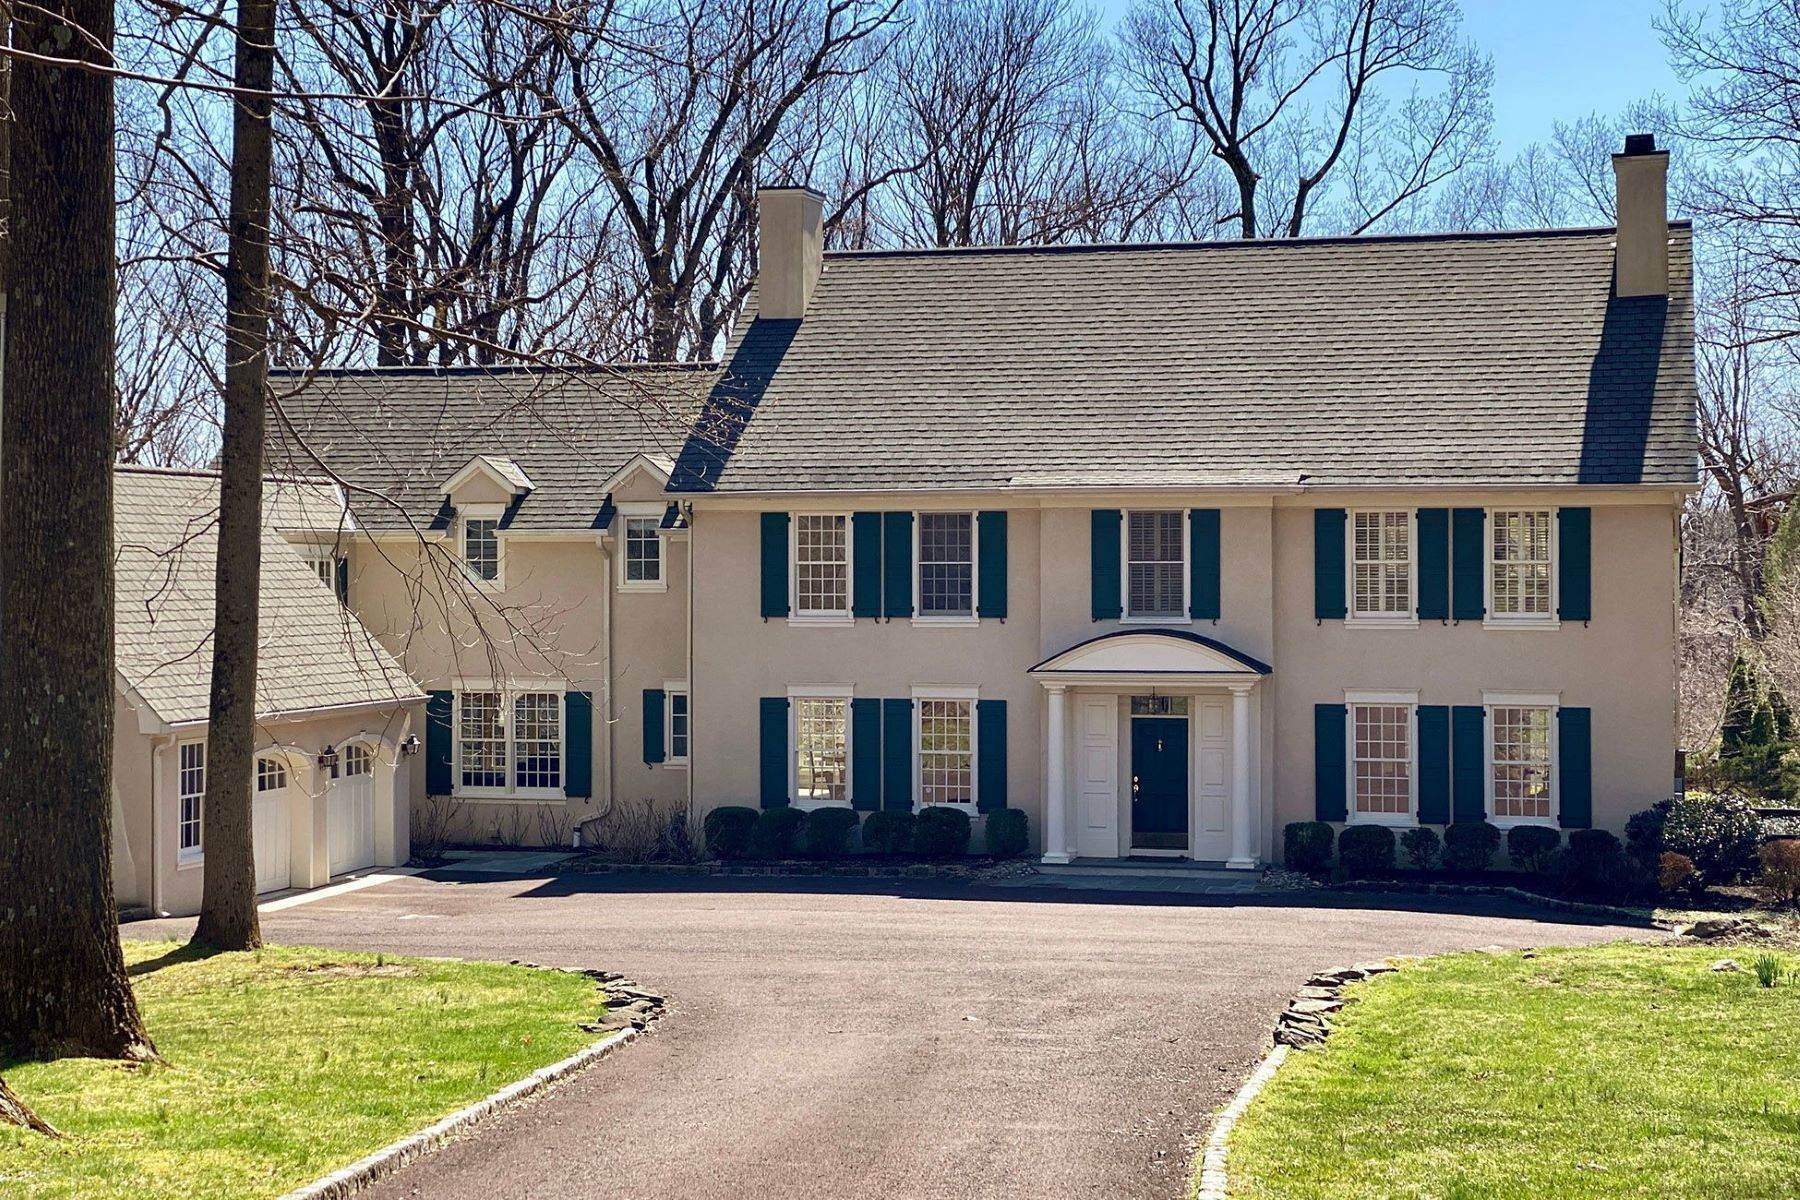 Single Family Homes for Sale at Spacious, Sunlit Rooms Overlook a Glorious Poolscape 33 Bogart Court, Princeton, New Jersey 08540 United States